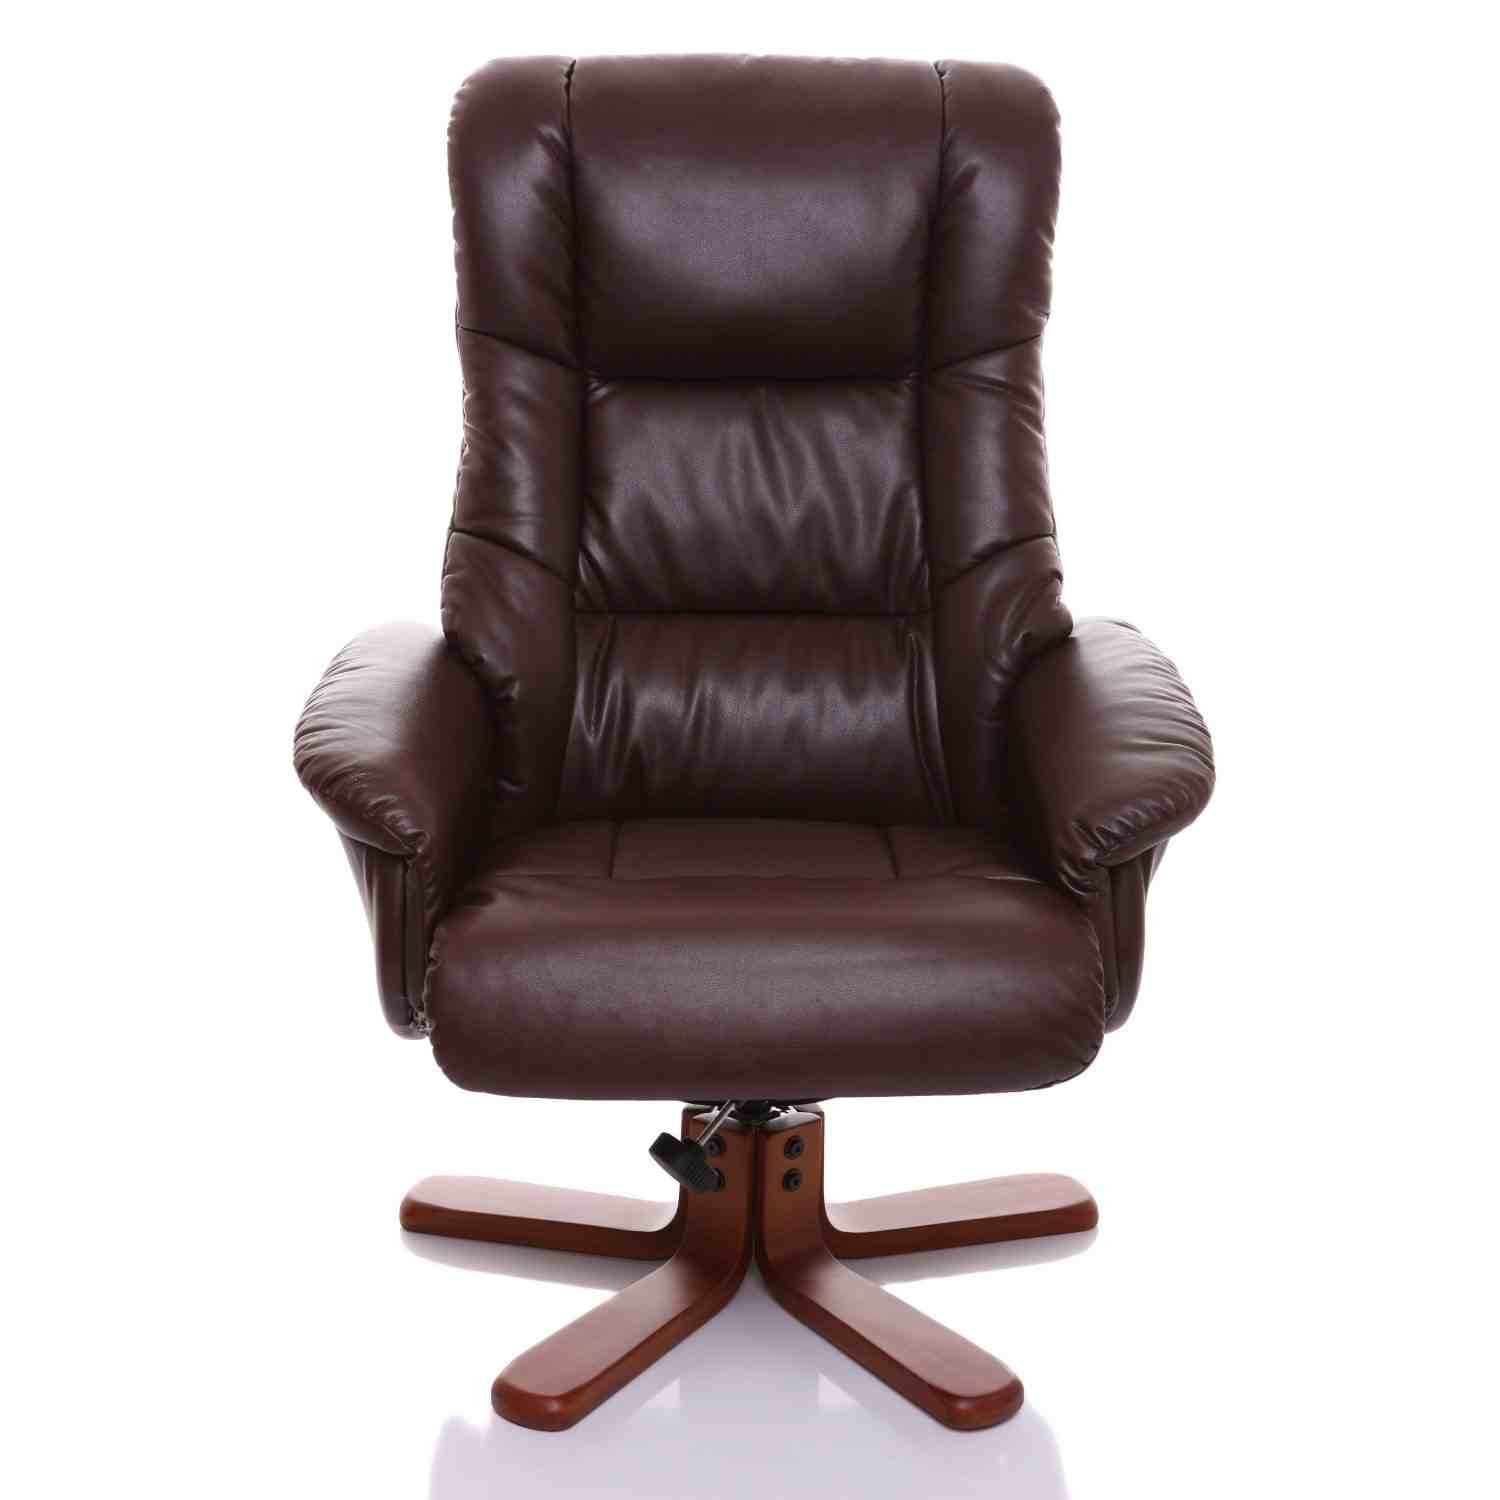 The Shanghai Bonded Leather Recliner Swivel Chair & Matching